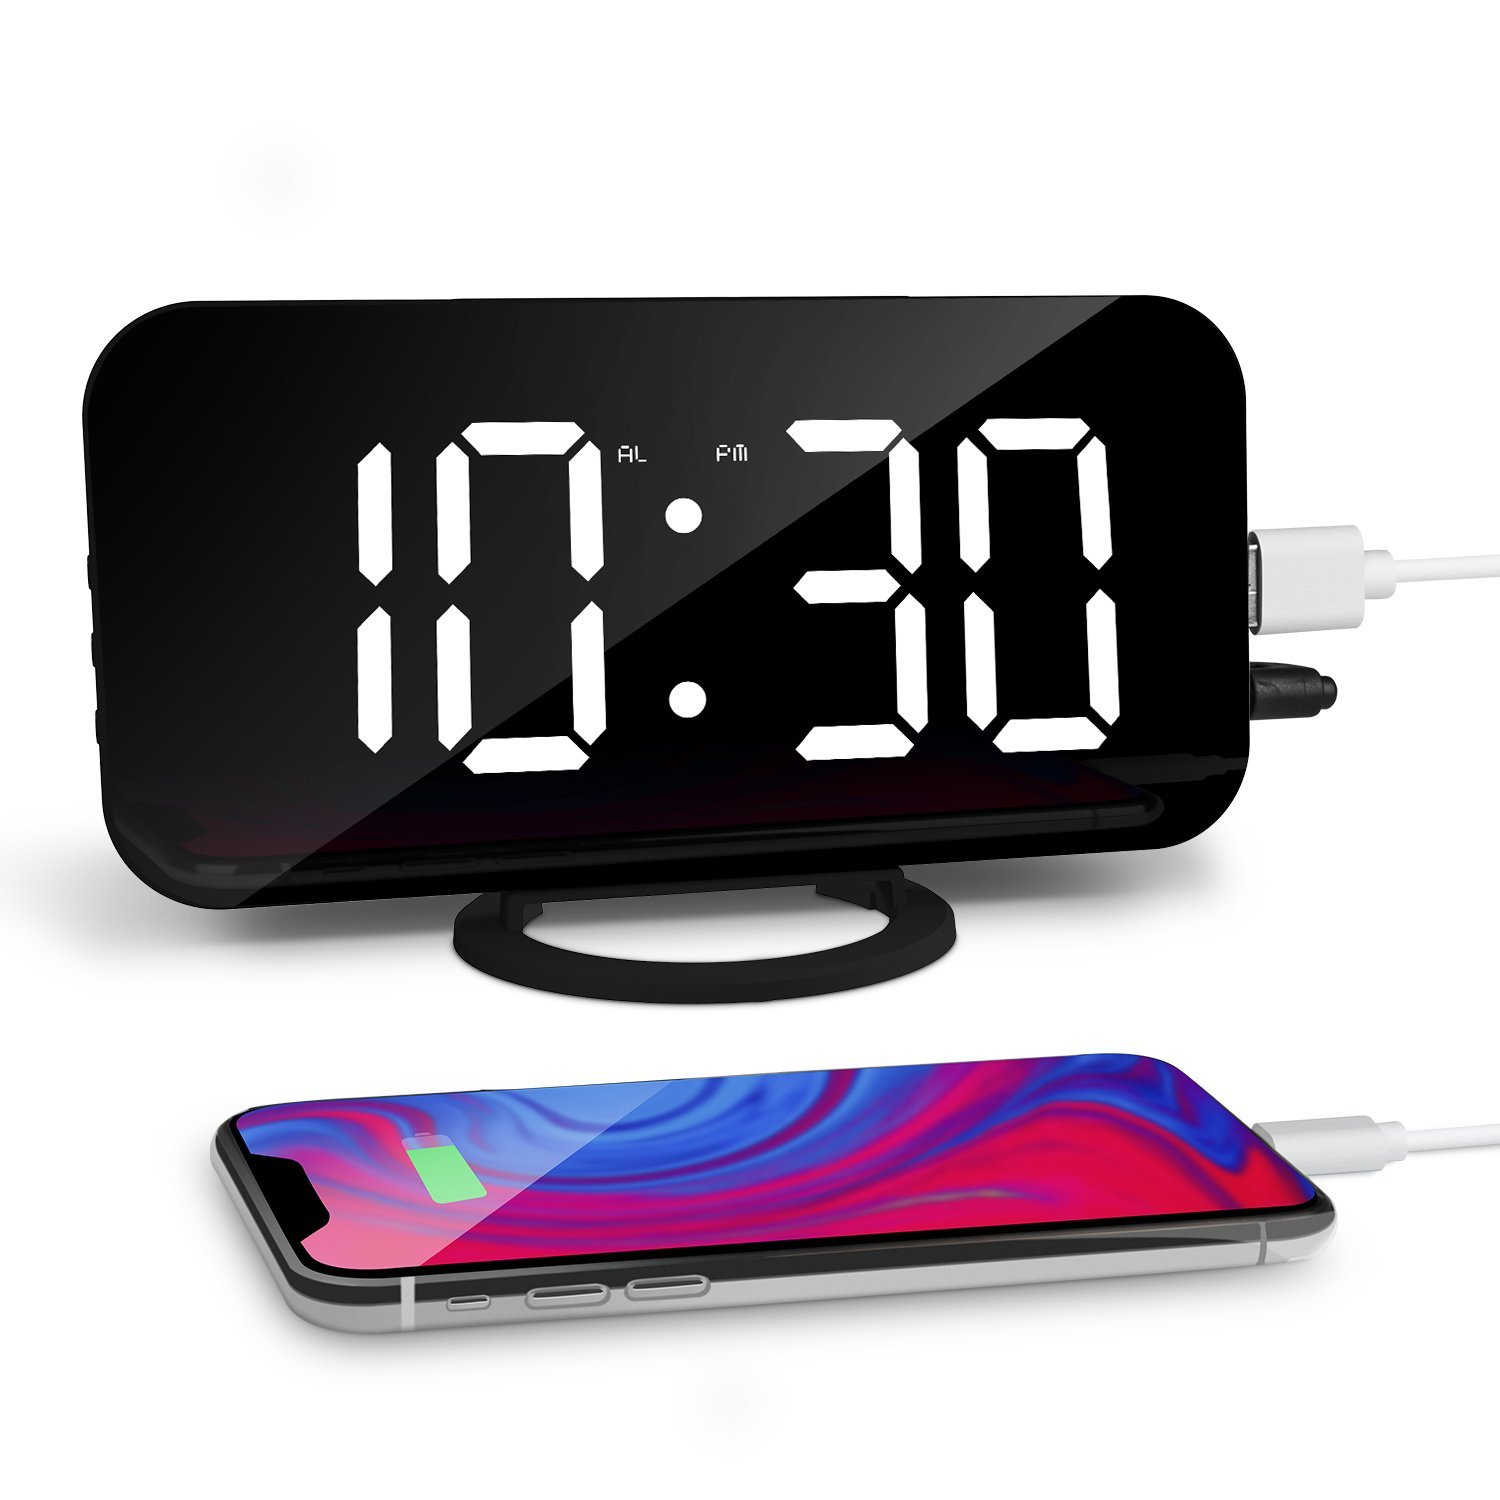 GEEKERS Digital Alarm Clock, 6.5'' Large Display Alarm Clock with Dual USB Charger Port, Dimmer and Big Snooze, LED Clock with Mirror Surface, Suitable for Bedroom, Home, Office Décor